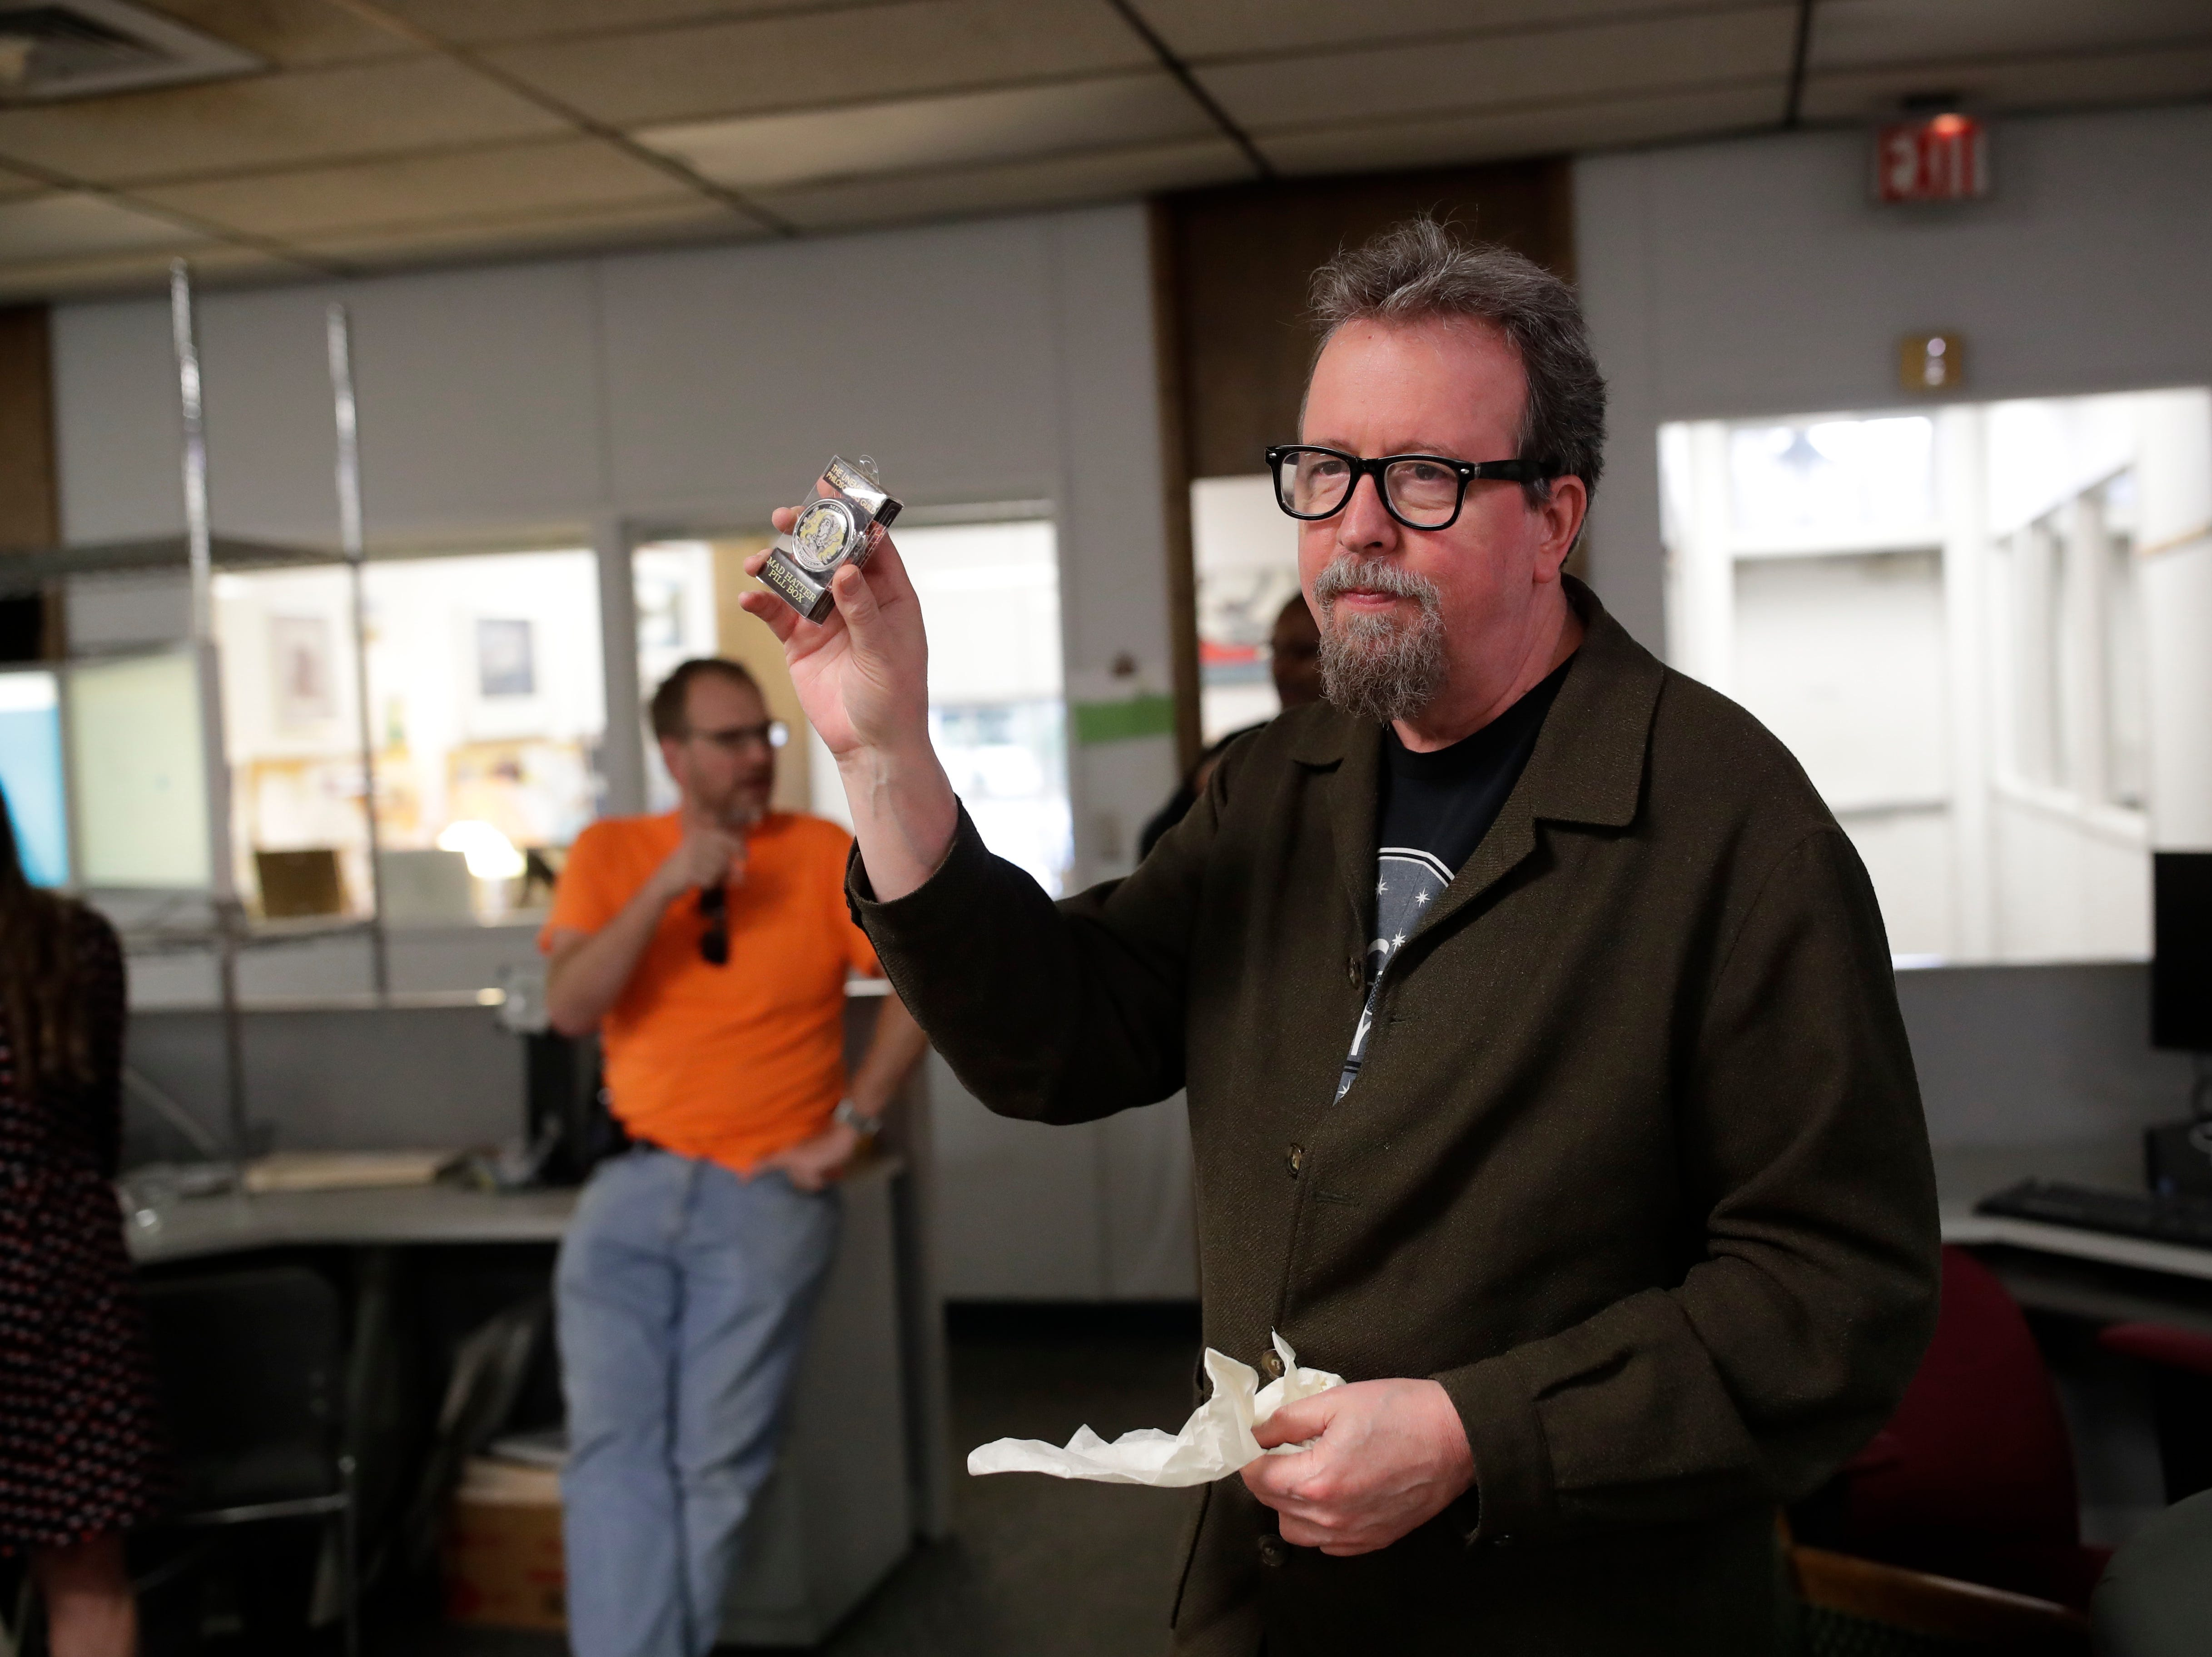 Former Arts and Entertainment Editor Mark Hinson opens gifts from his colleagues on his last day of work at the Tallahassee Democrat Wednesday, Jan. 2, 2019.